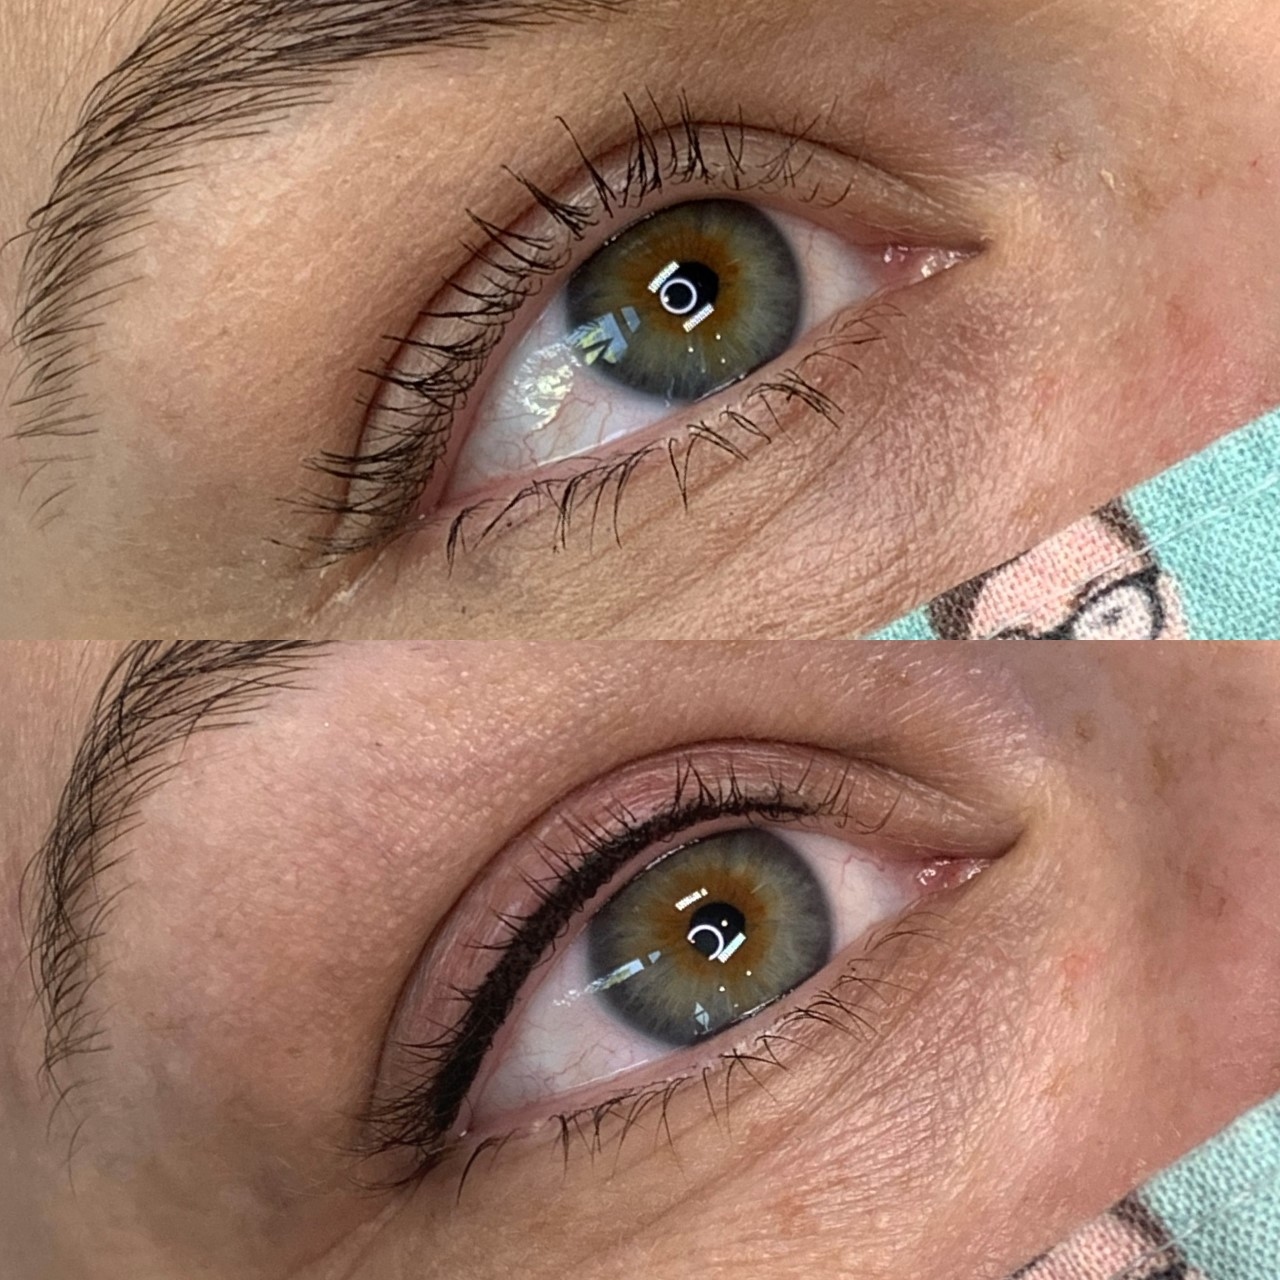 portland microblading pdx cosmetic tattoo tattooer chloe brows eyebrows studio meraki